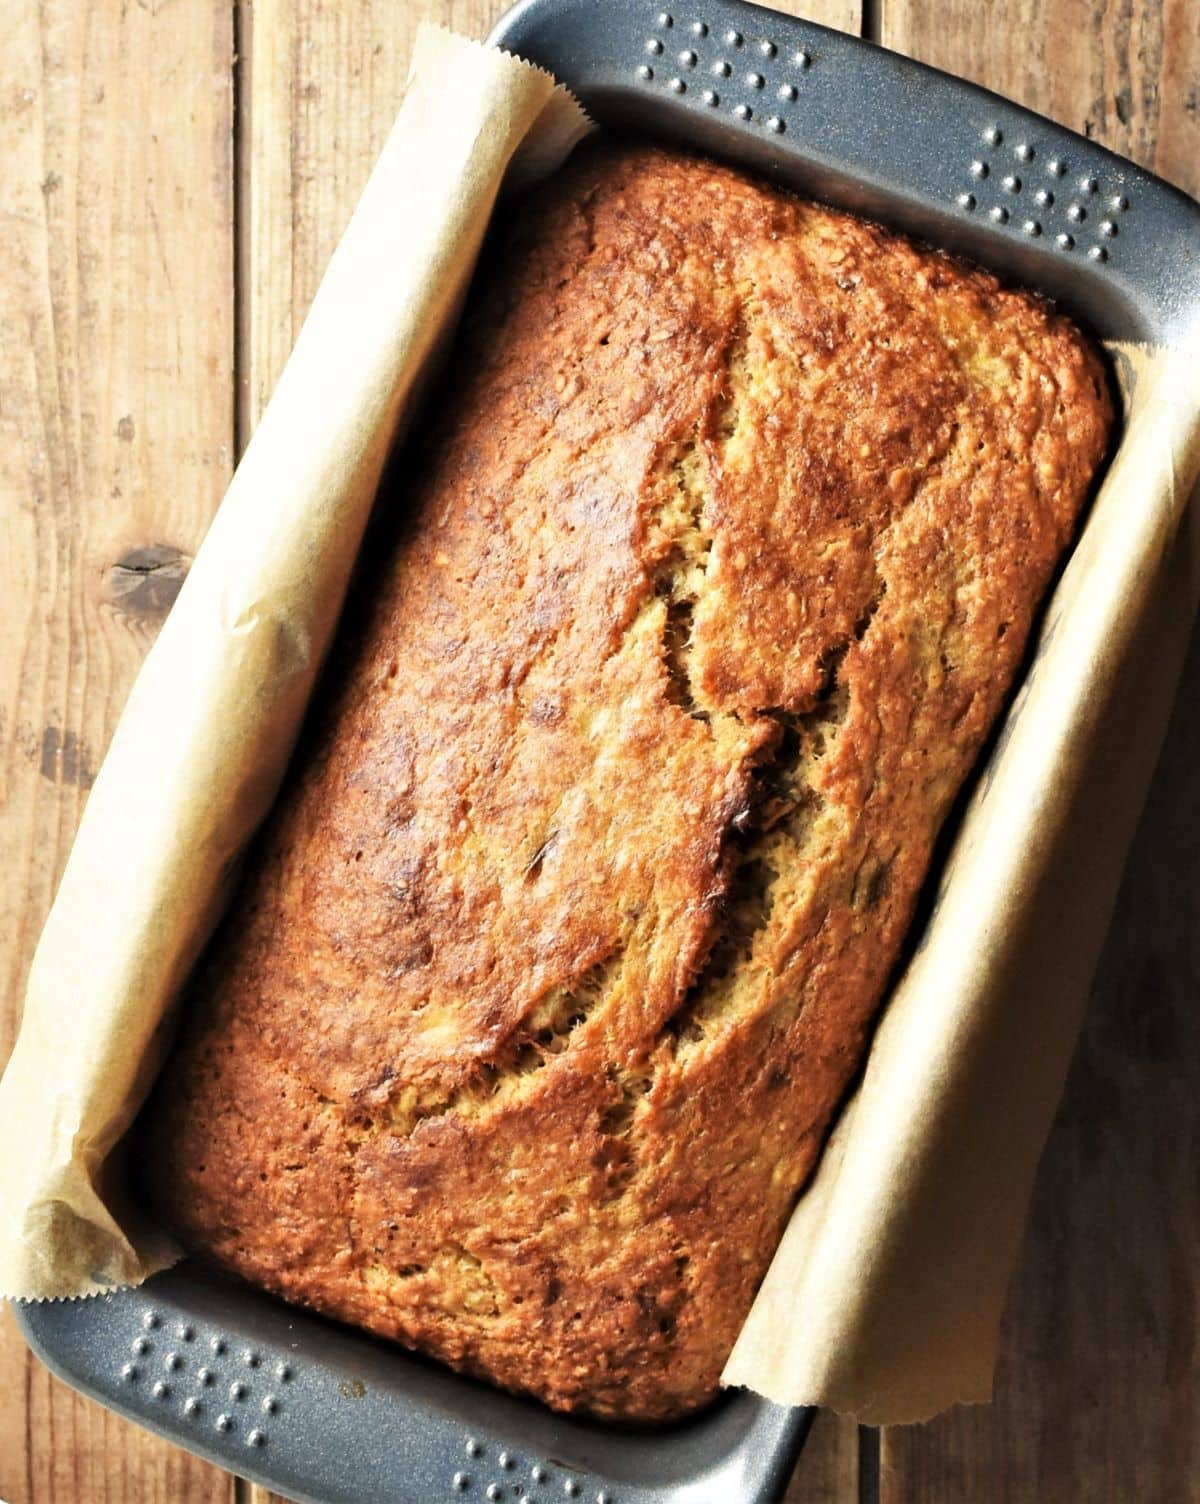 Top down view of banana bread in pan lined with paper.